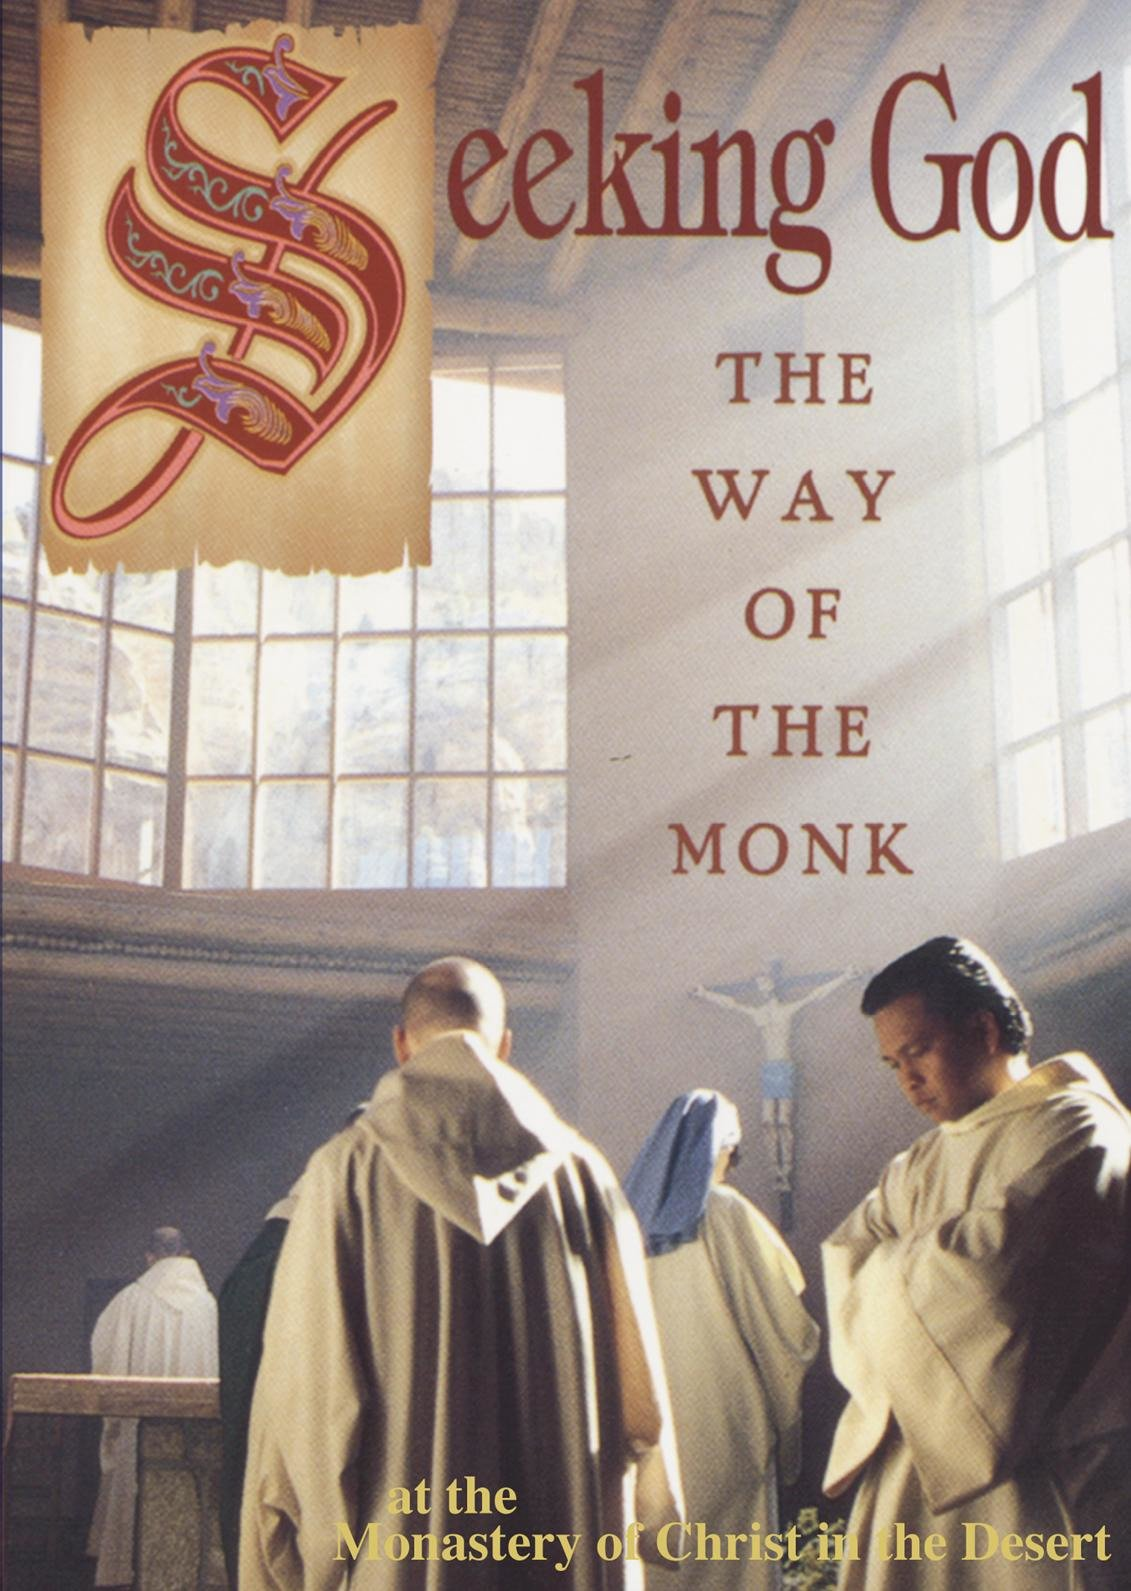 Seeking God: The Way Of The Monk